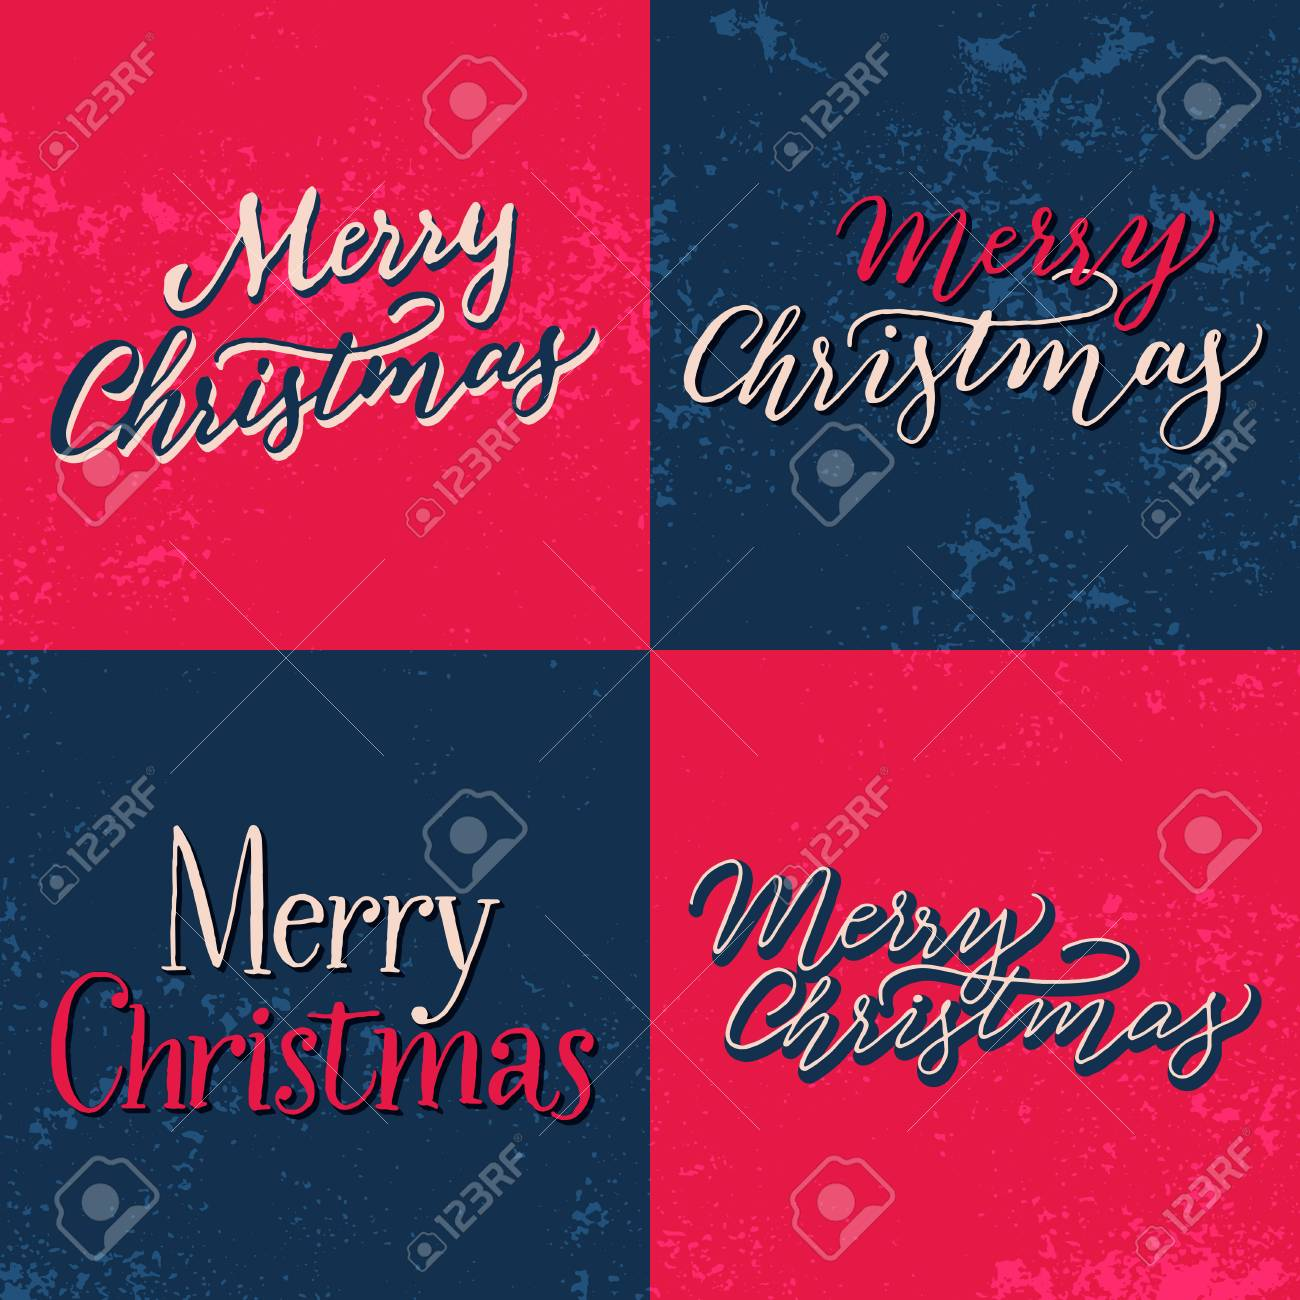 Set Of Vintage Christmas Cards With Hand Lettering. Handwritten Calligraphy  U0027Merry Christmasu0027 On